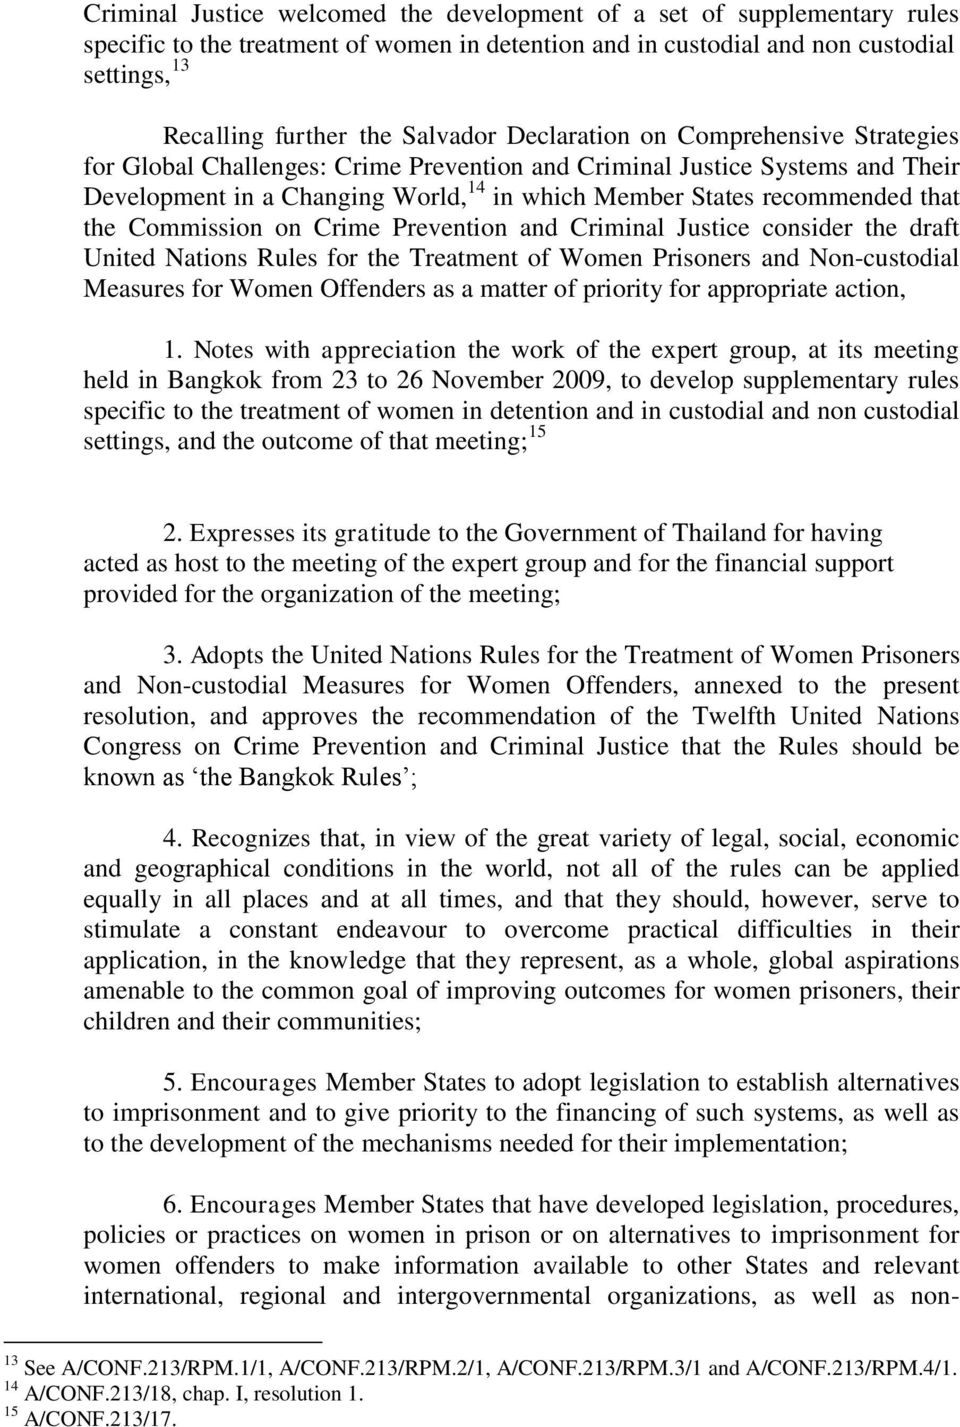 that the Commission on Crime Prevention and Criminal Justice consider the draft United Nations Rules for the Treatment of Women Prisoners and Non-custodial Measures for Women Offenders as a matter of